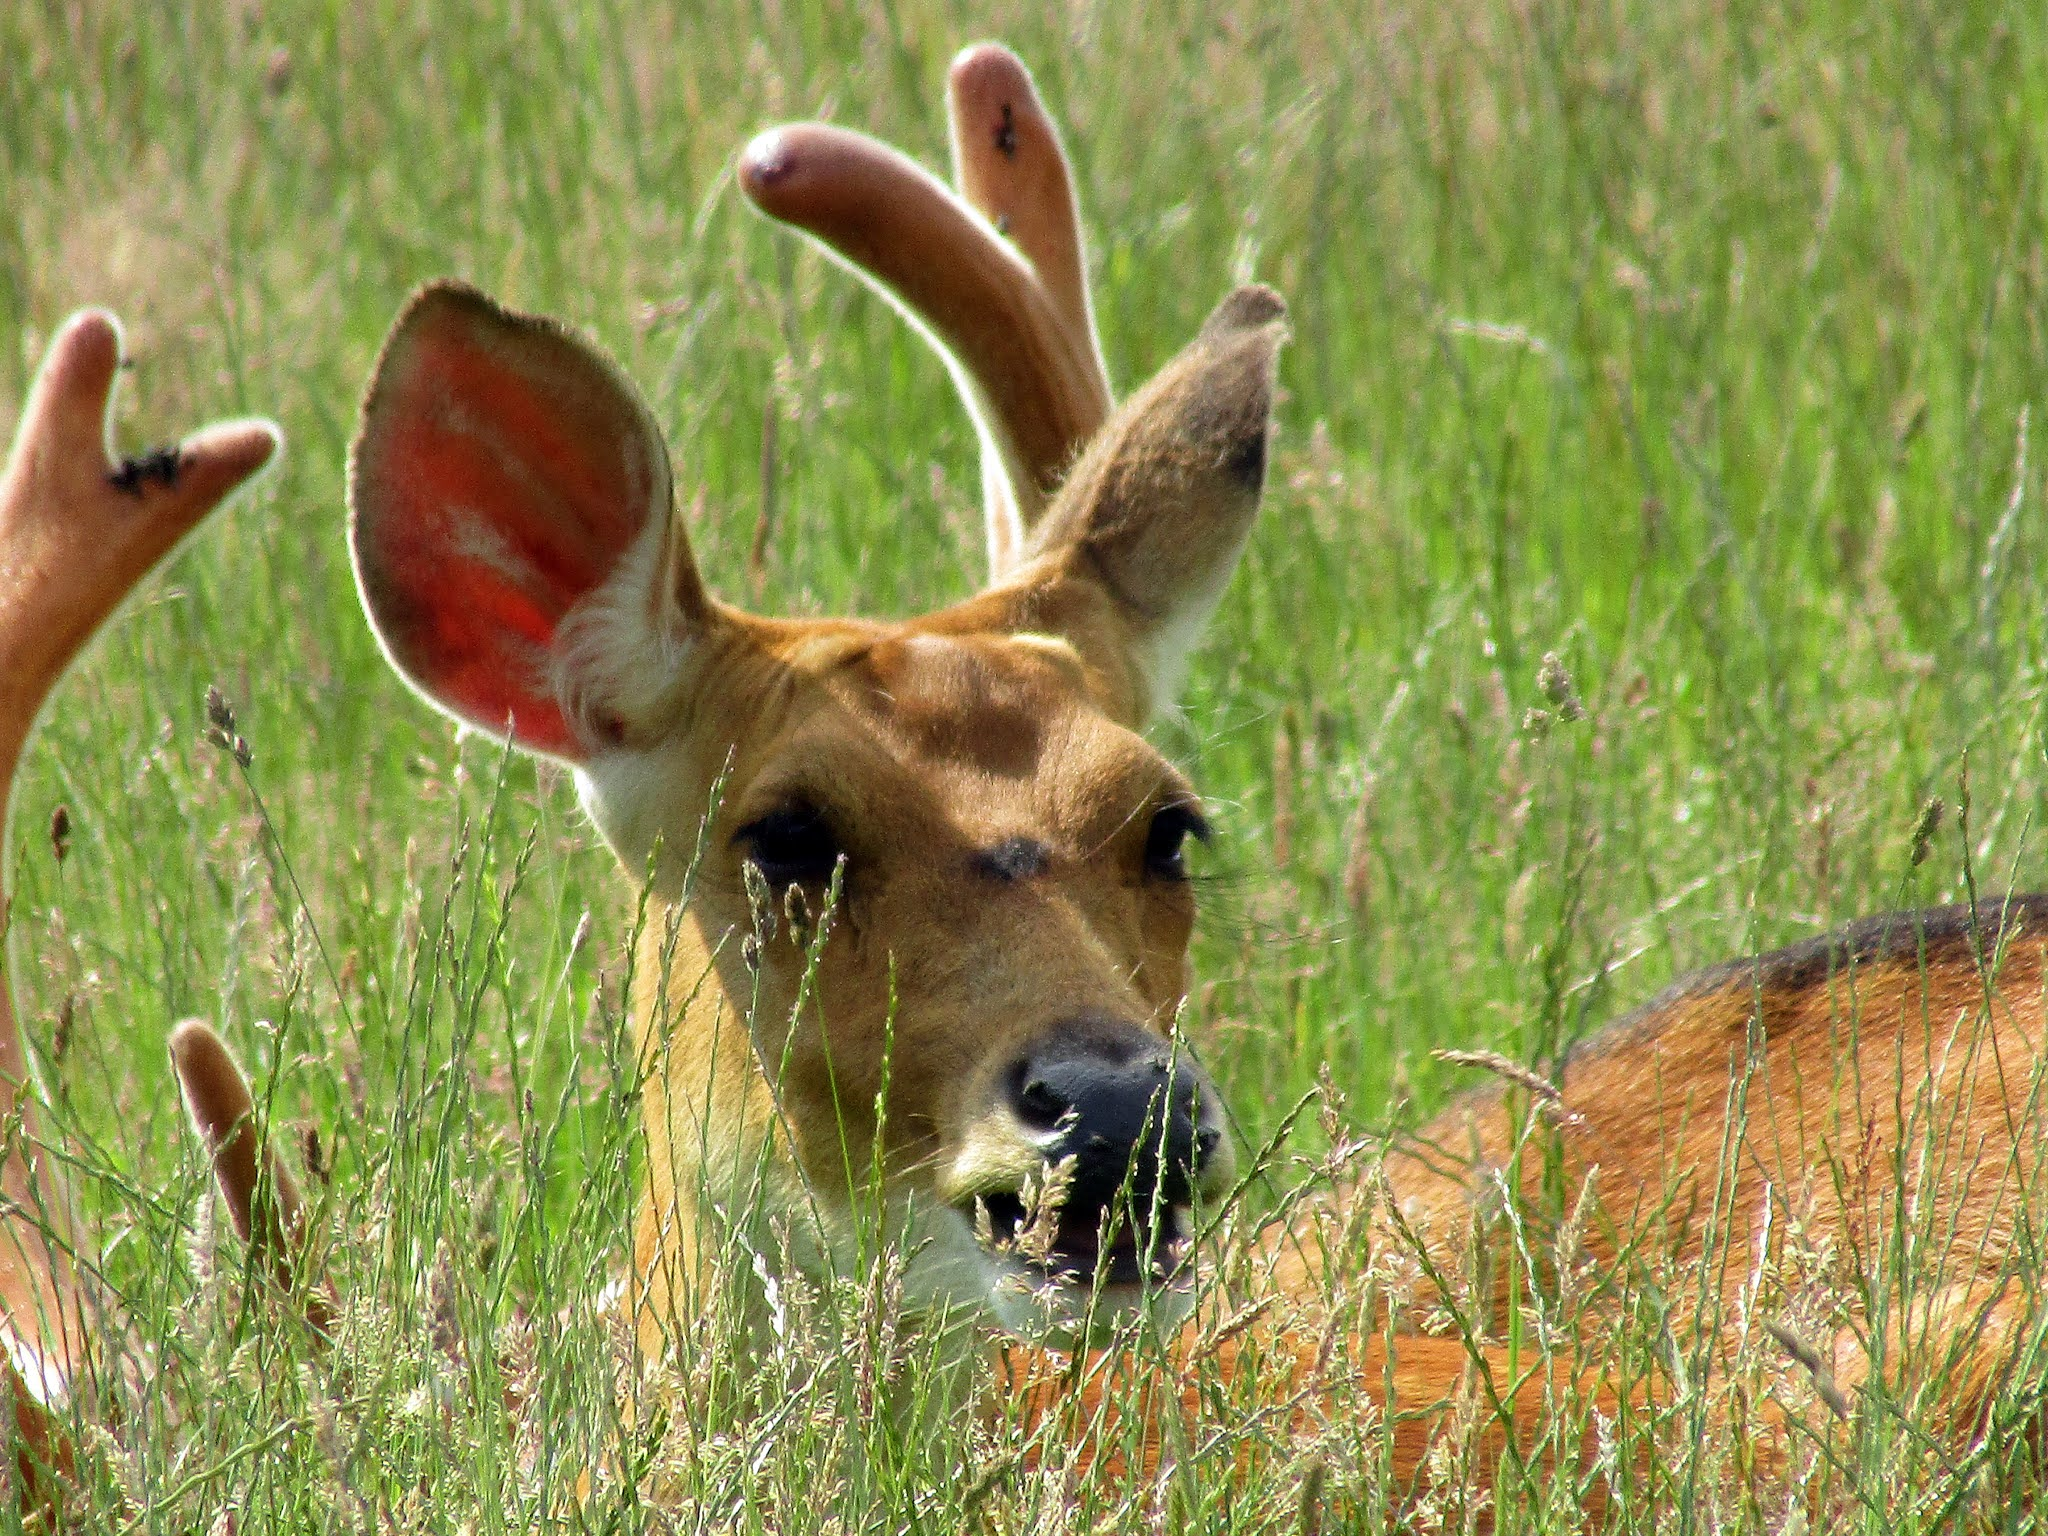 A photo of a doe at Whipsnade Zoo.